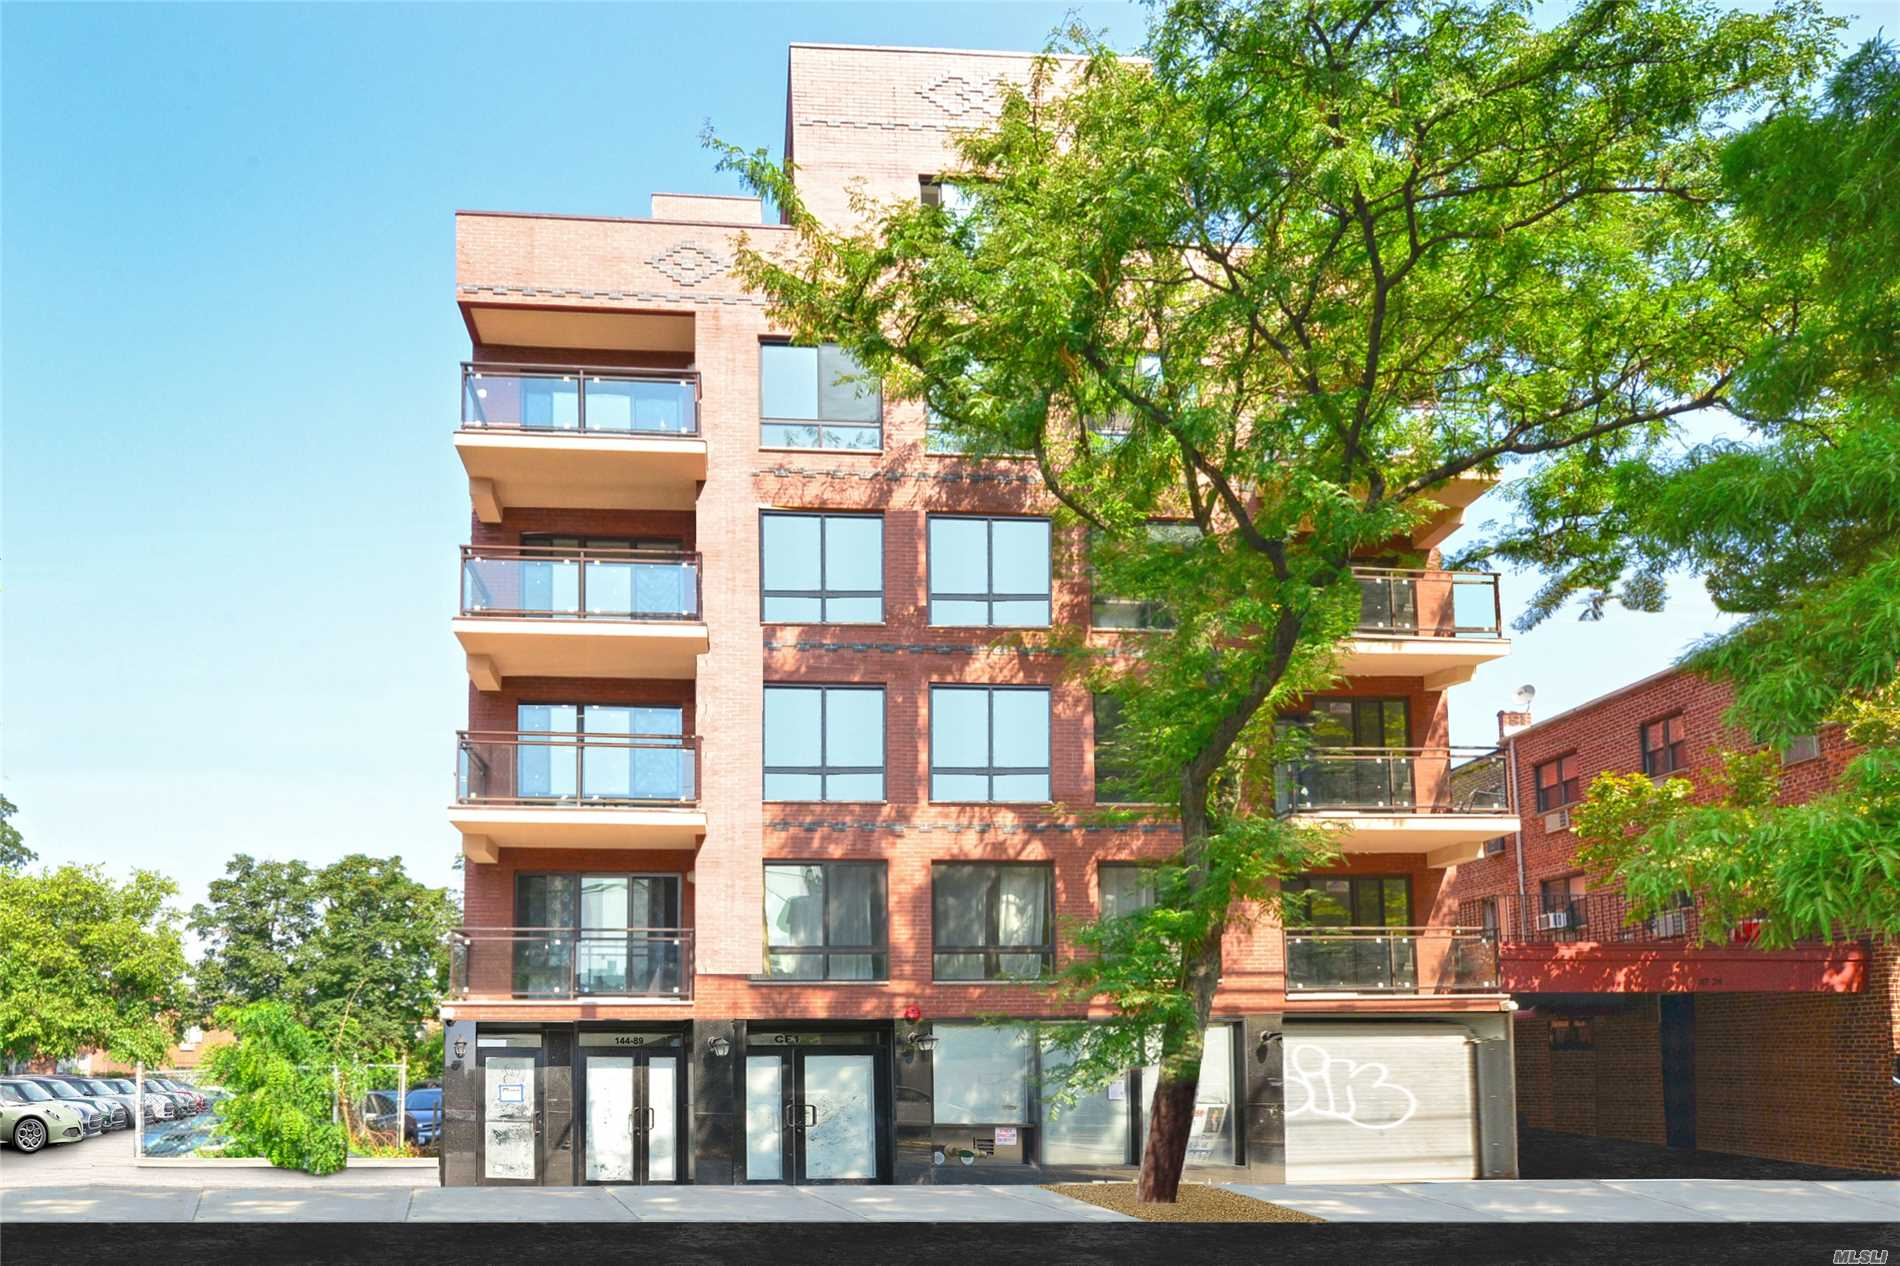 Acquisto commerciale in 144-89 38 Ave, Flushing, NY ,11354